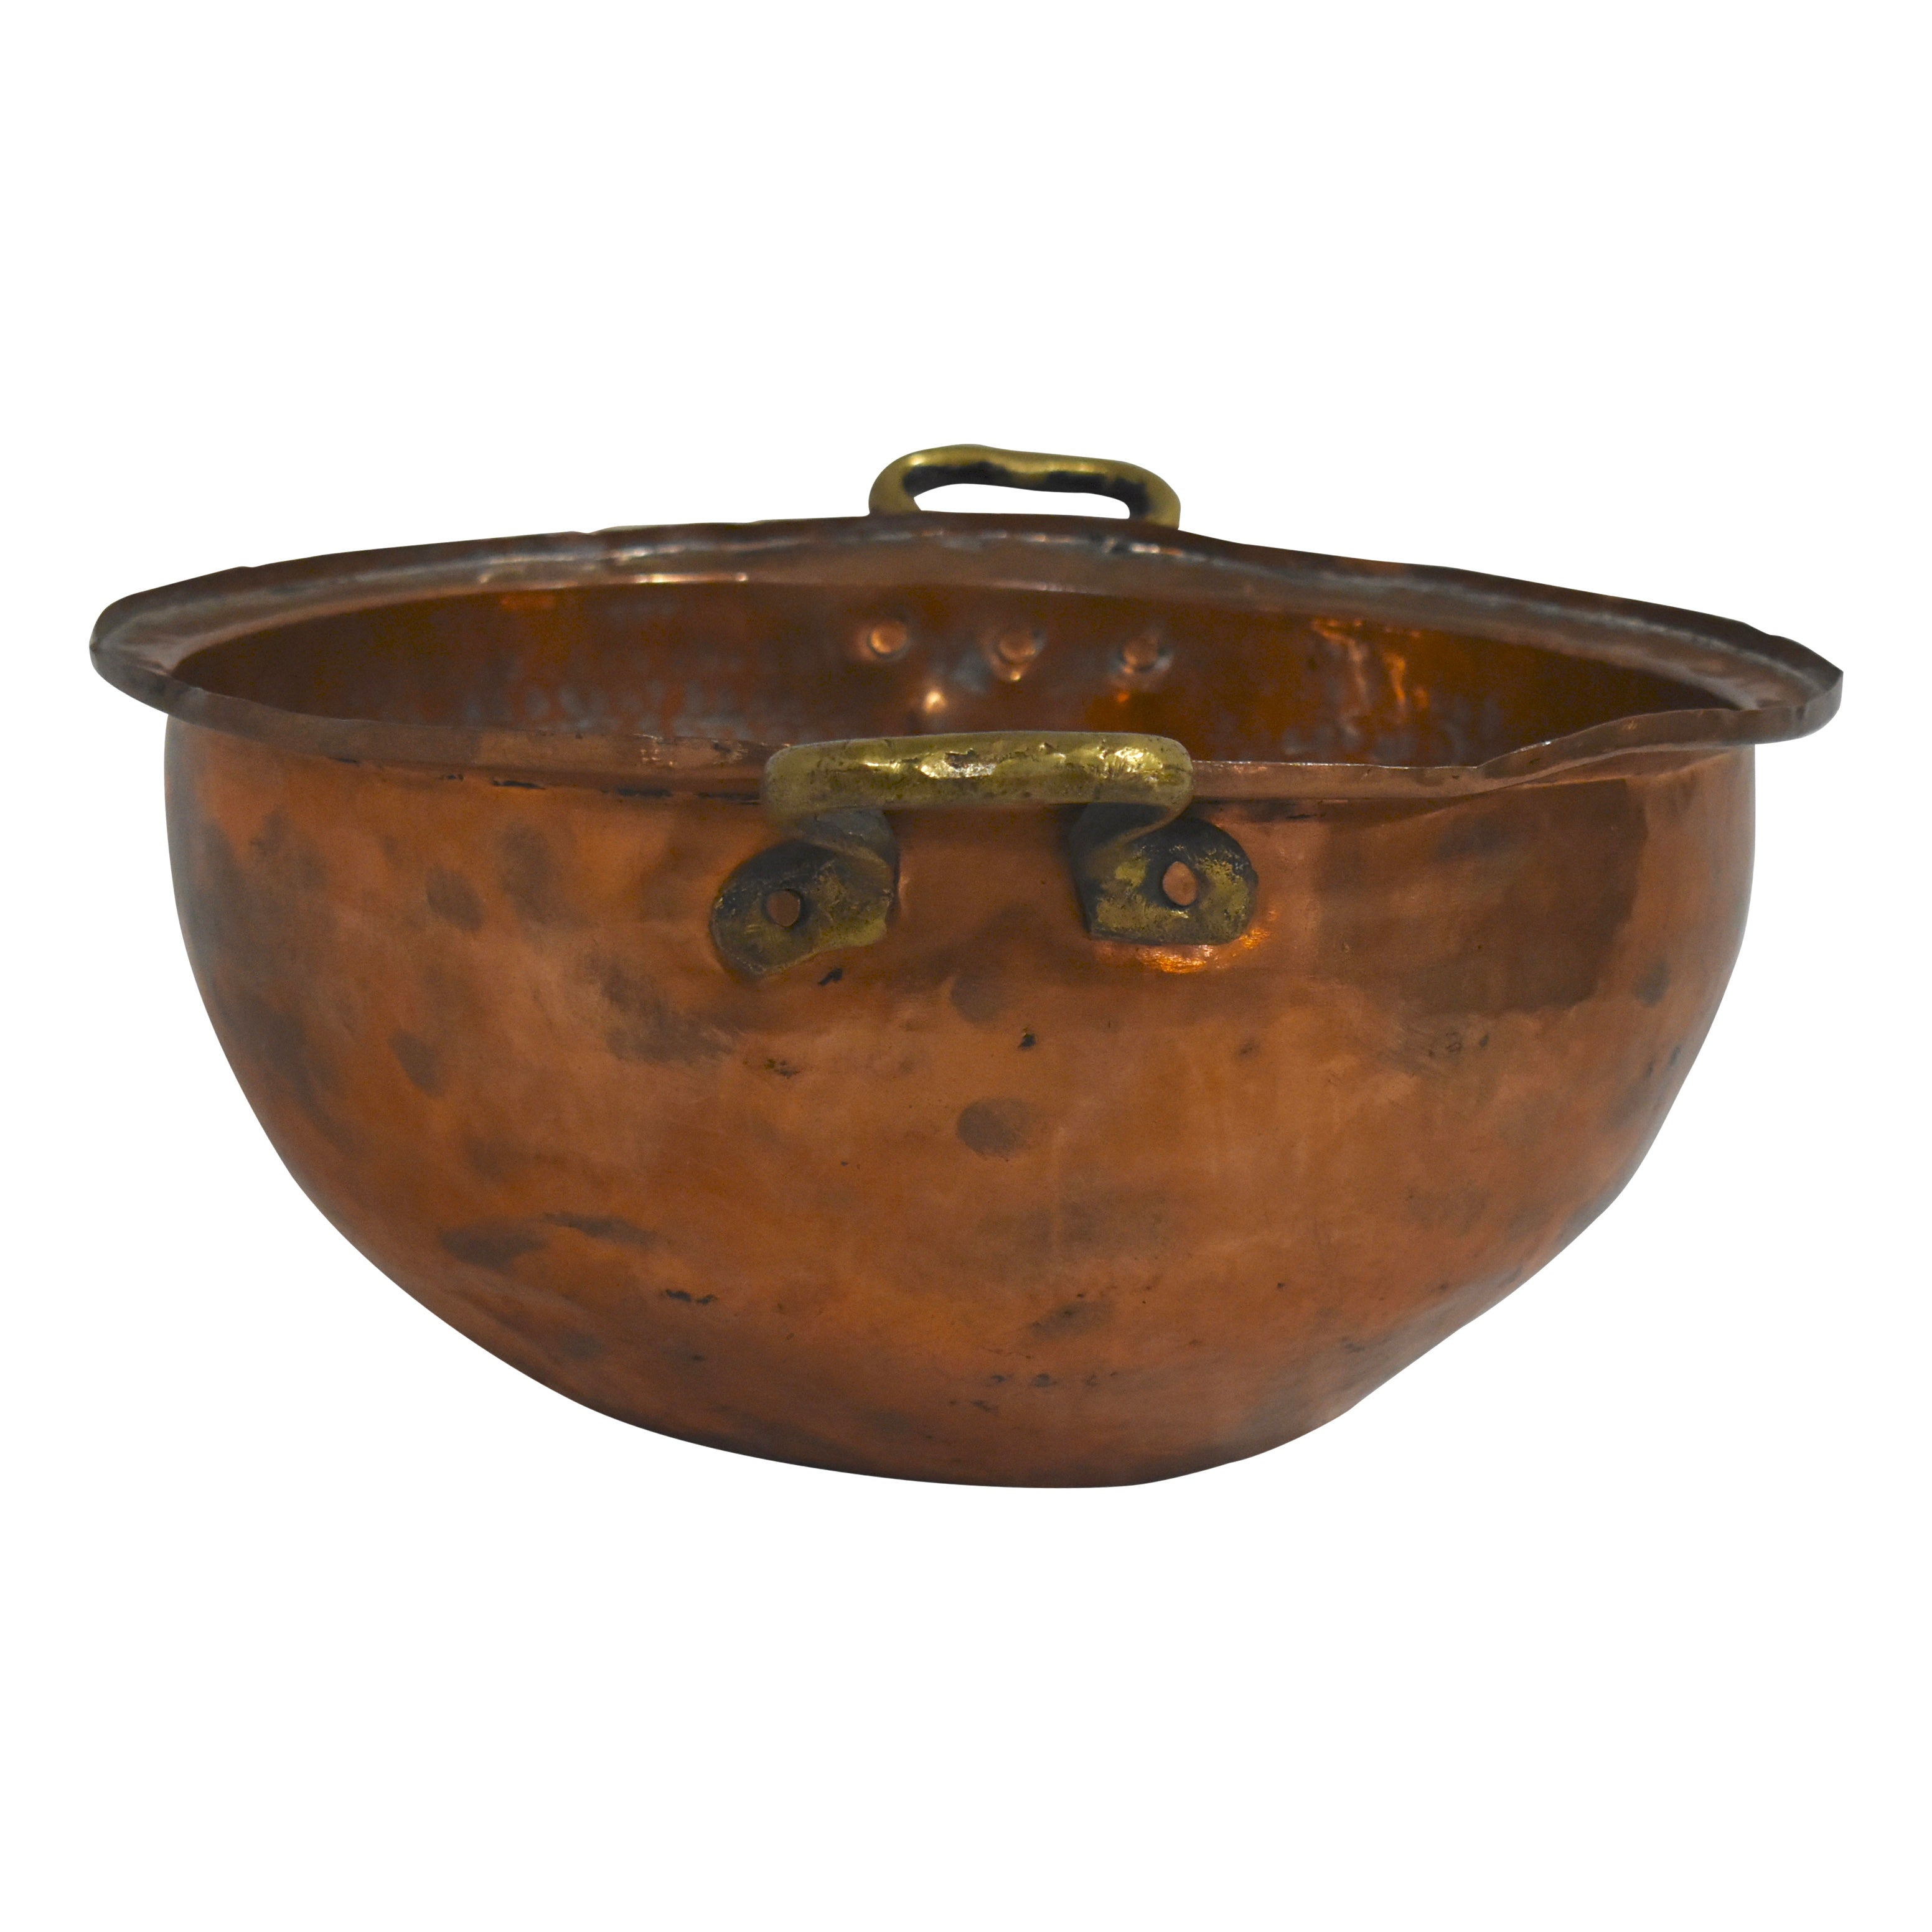 Copper Bowl with Brass Handles